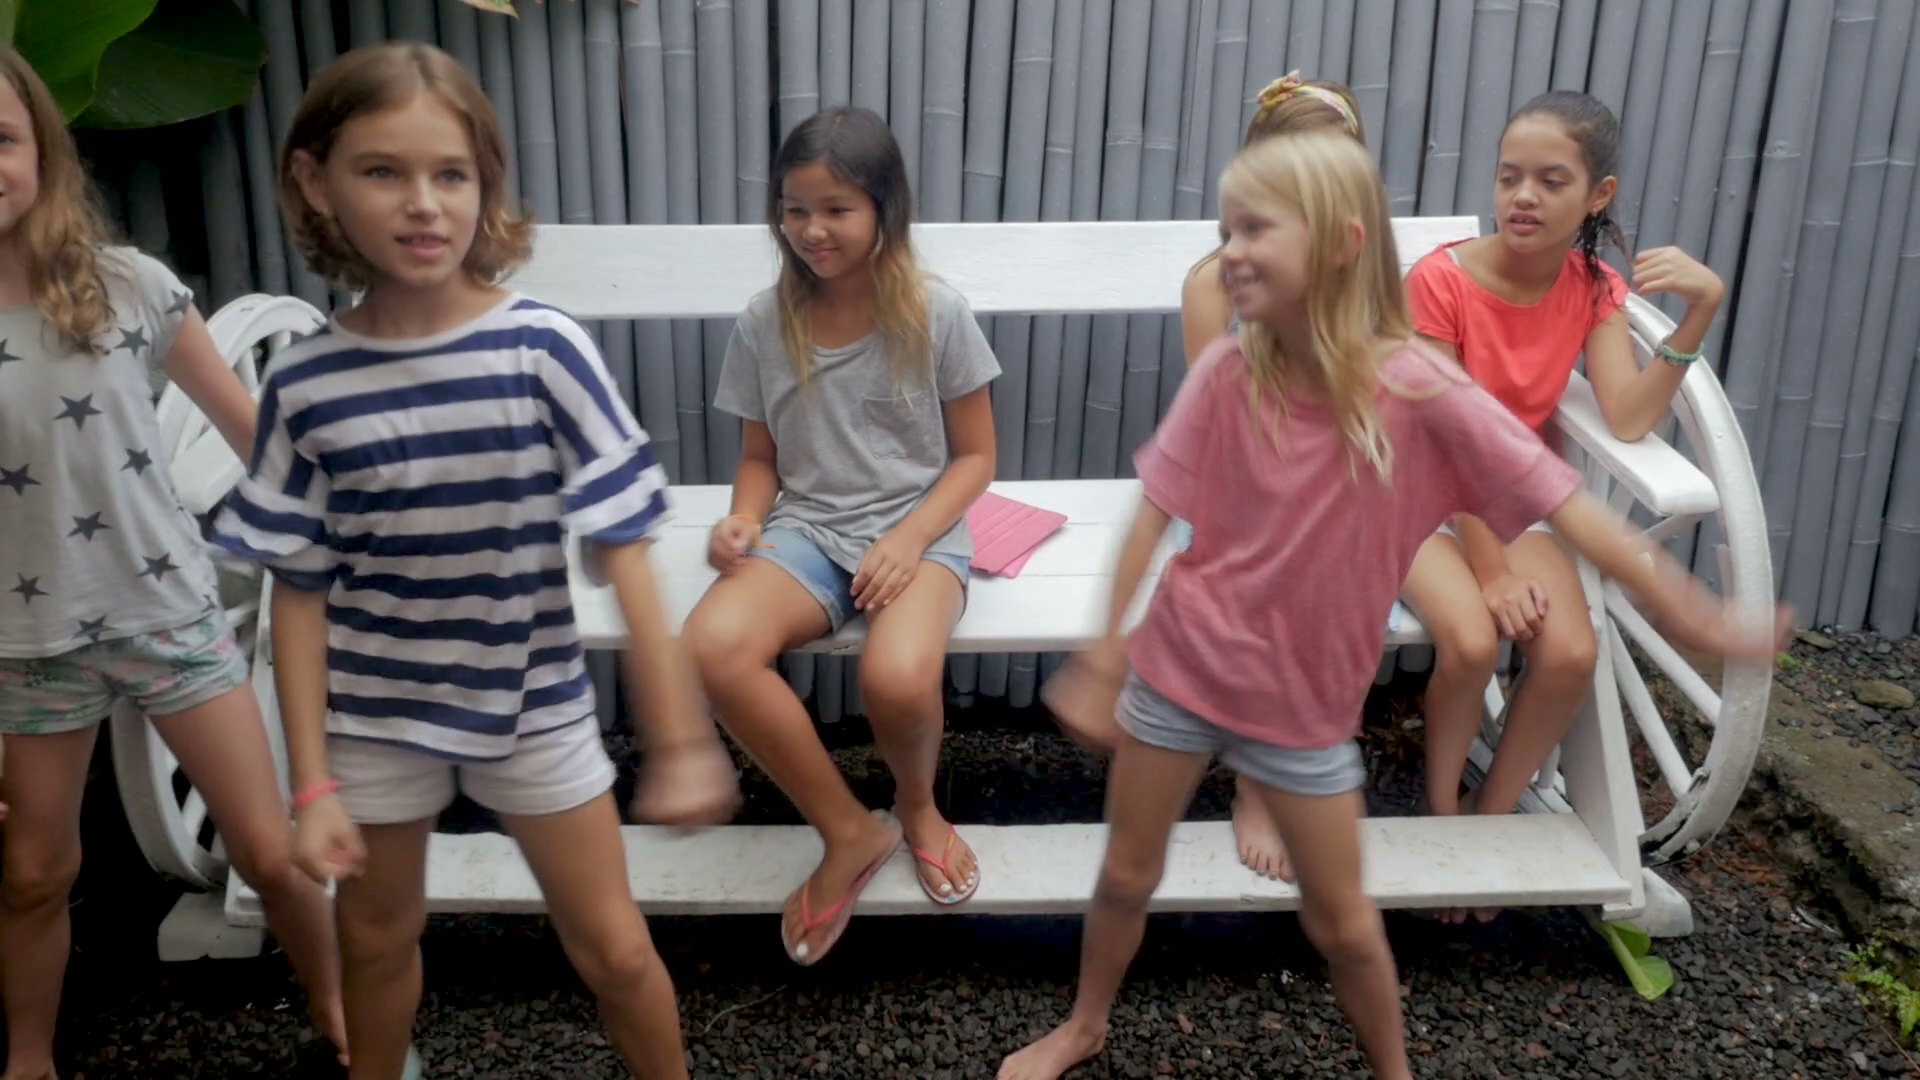 Diverse group of young mixed ethnic girls ages 7 - 12 getting off a bench to join their friend dancing in slow motion Stock Video Footage - Storyblocks [0:11x1080p]->